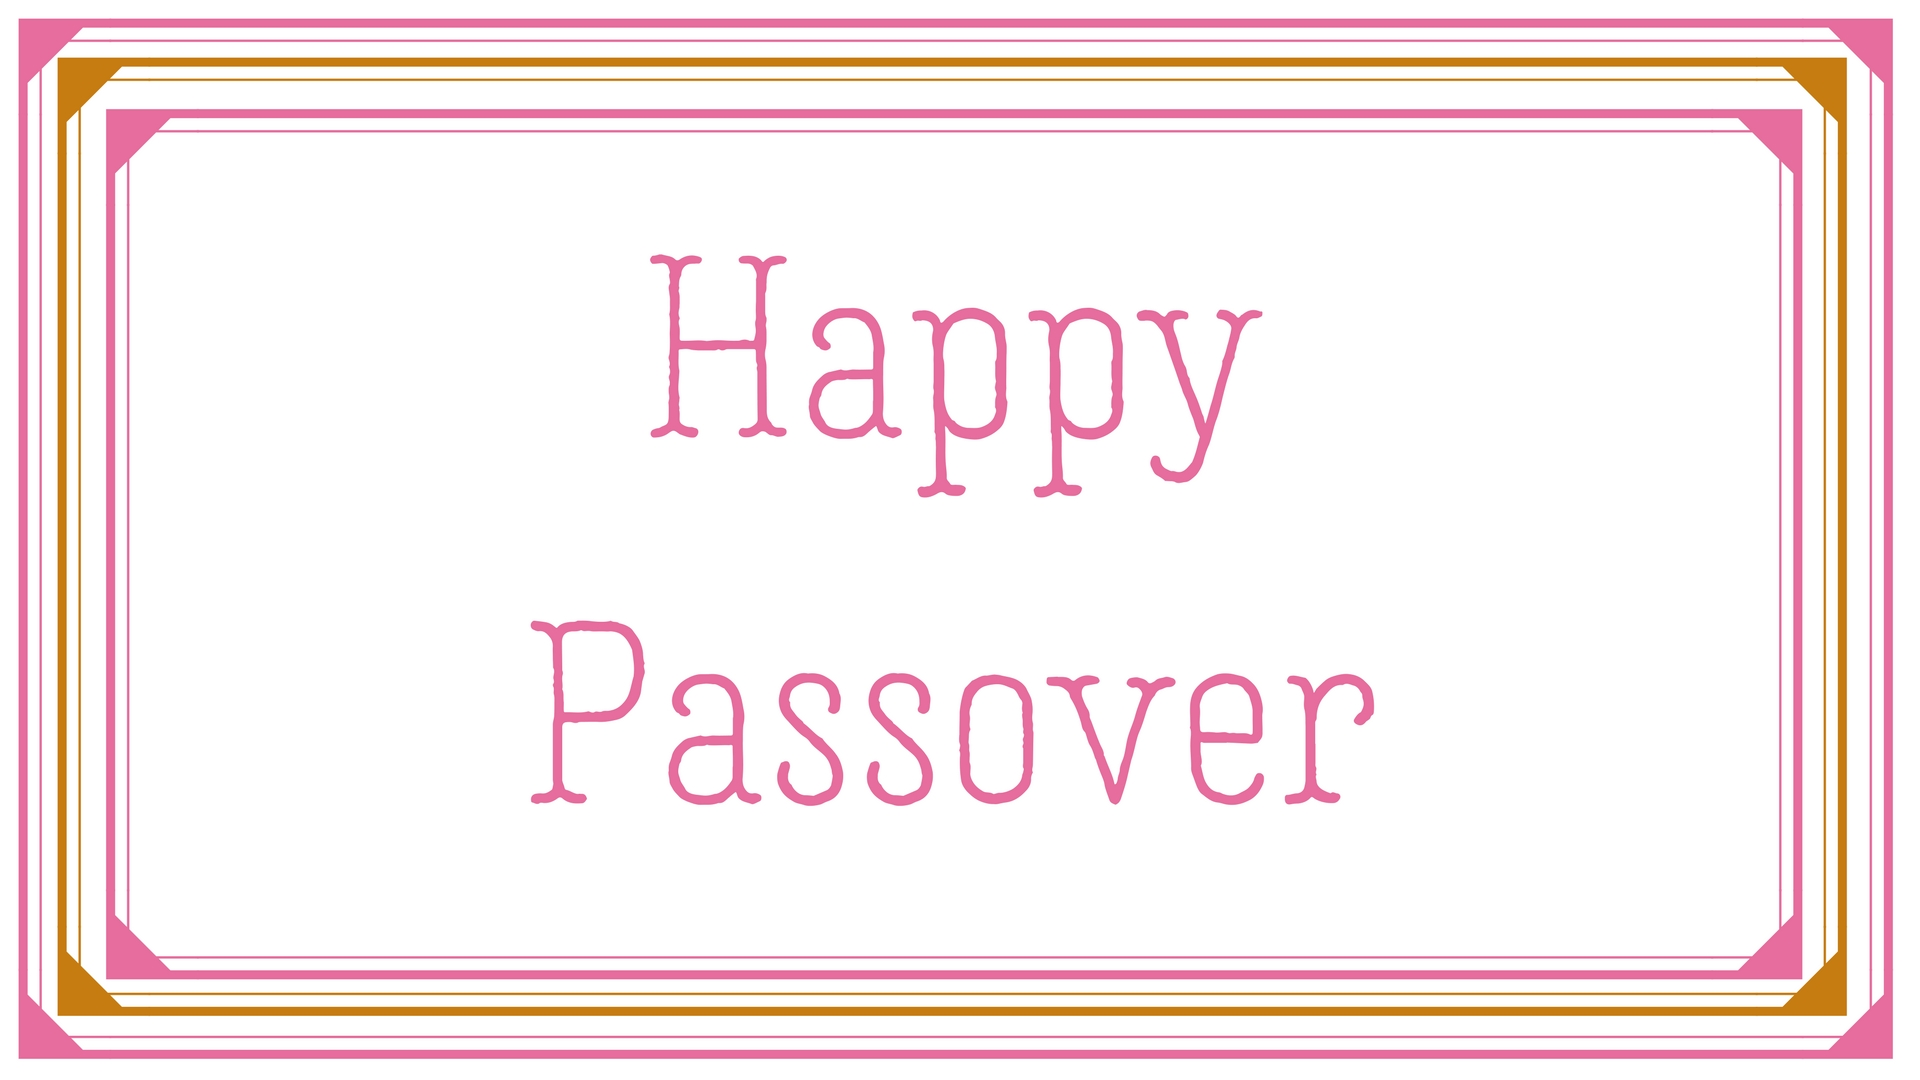 Happy Passover Rectangle Frame Greeting Card Postcard 17